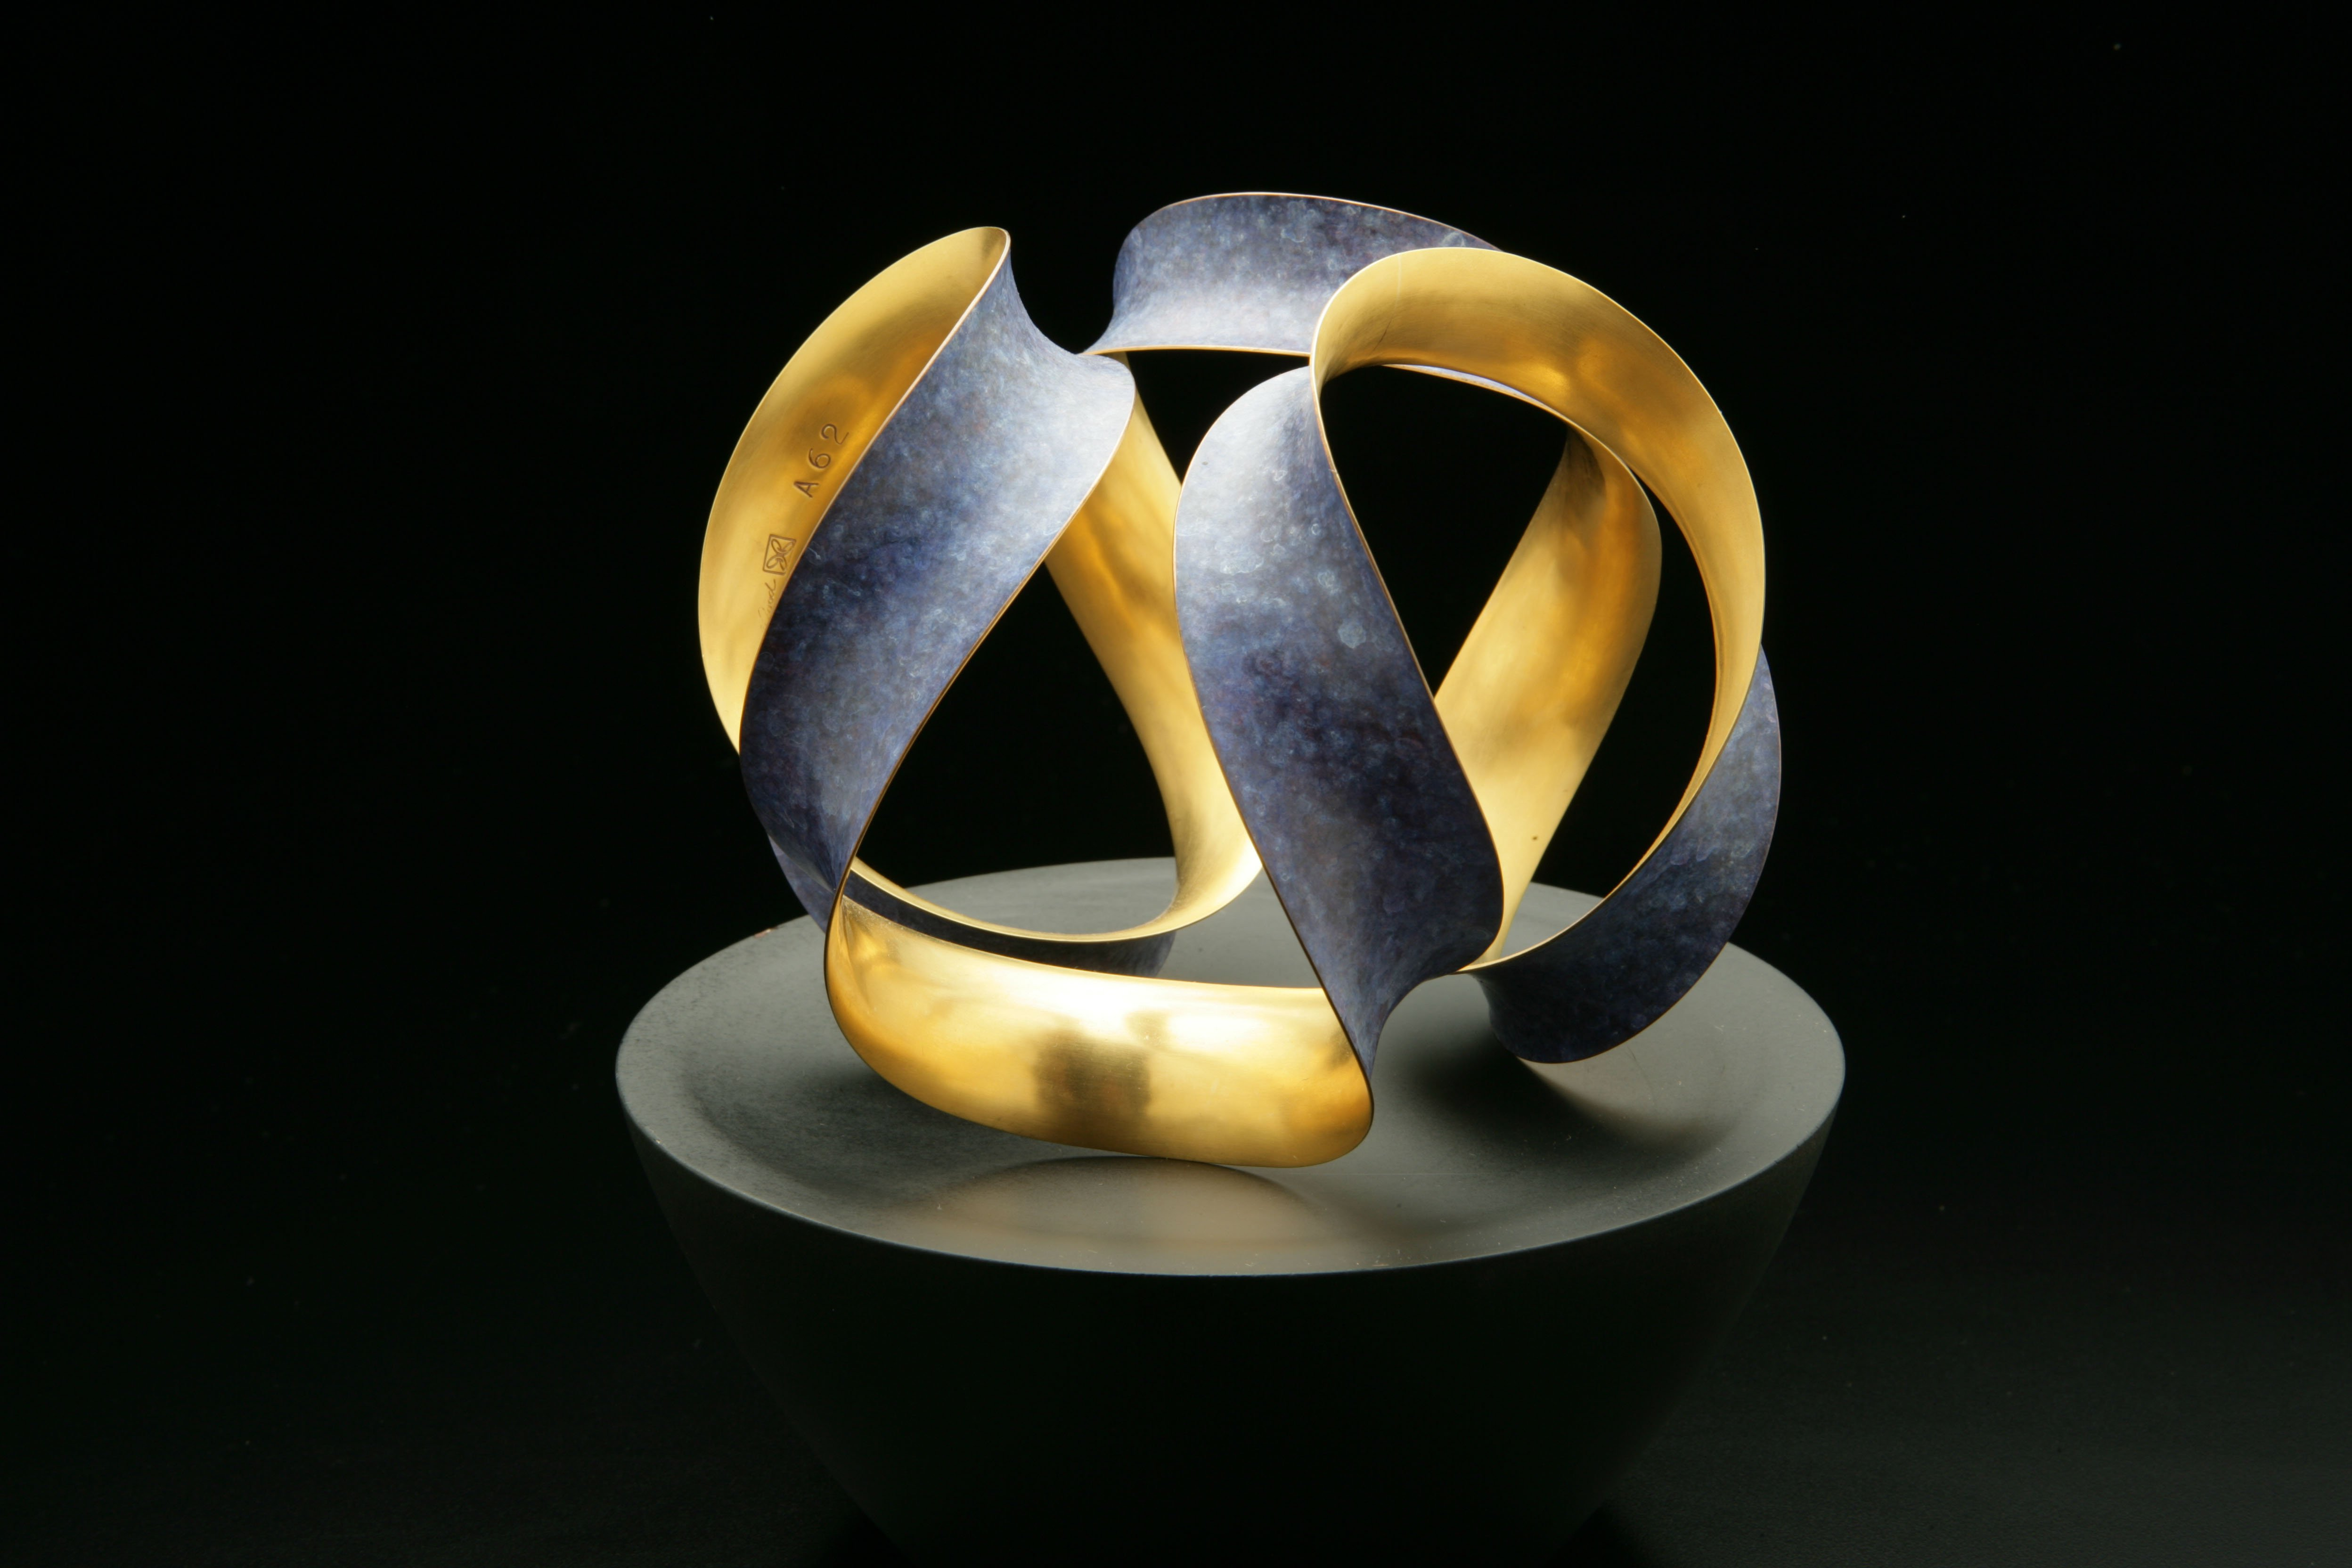 Michael Good, #A62 OBQ, bronze and 22K gold